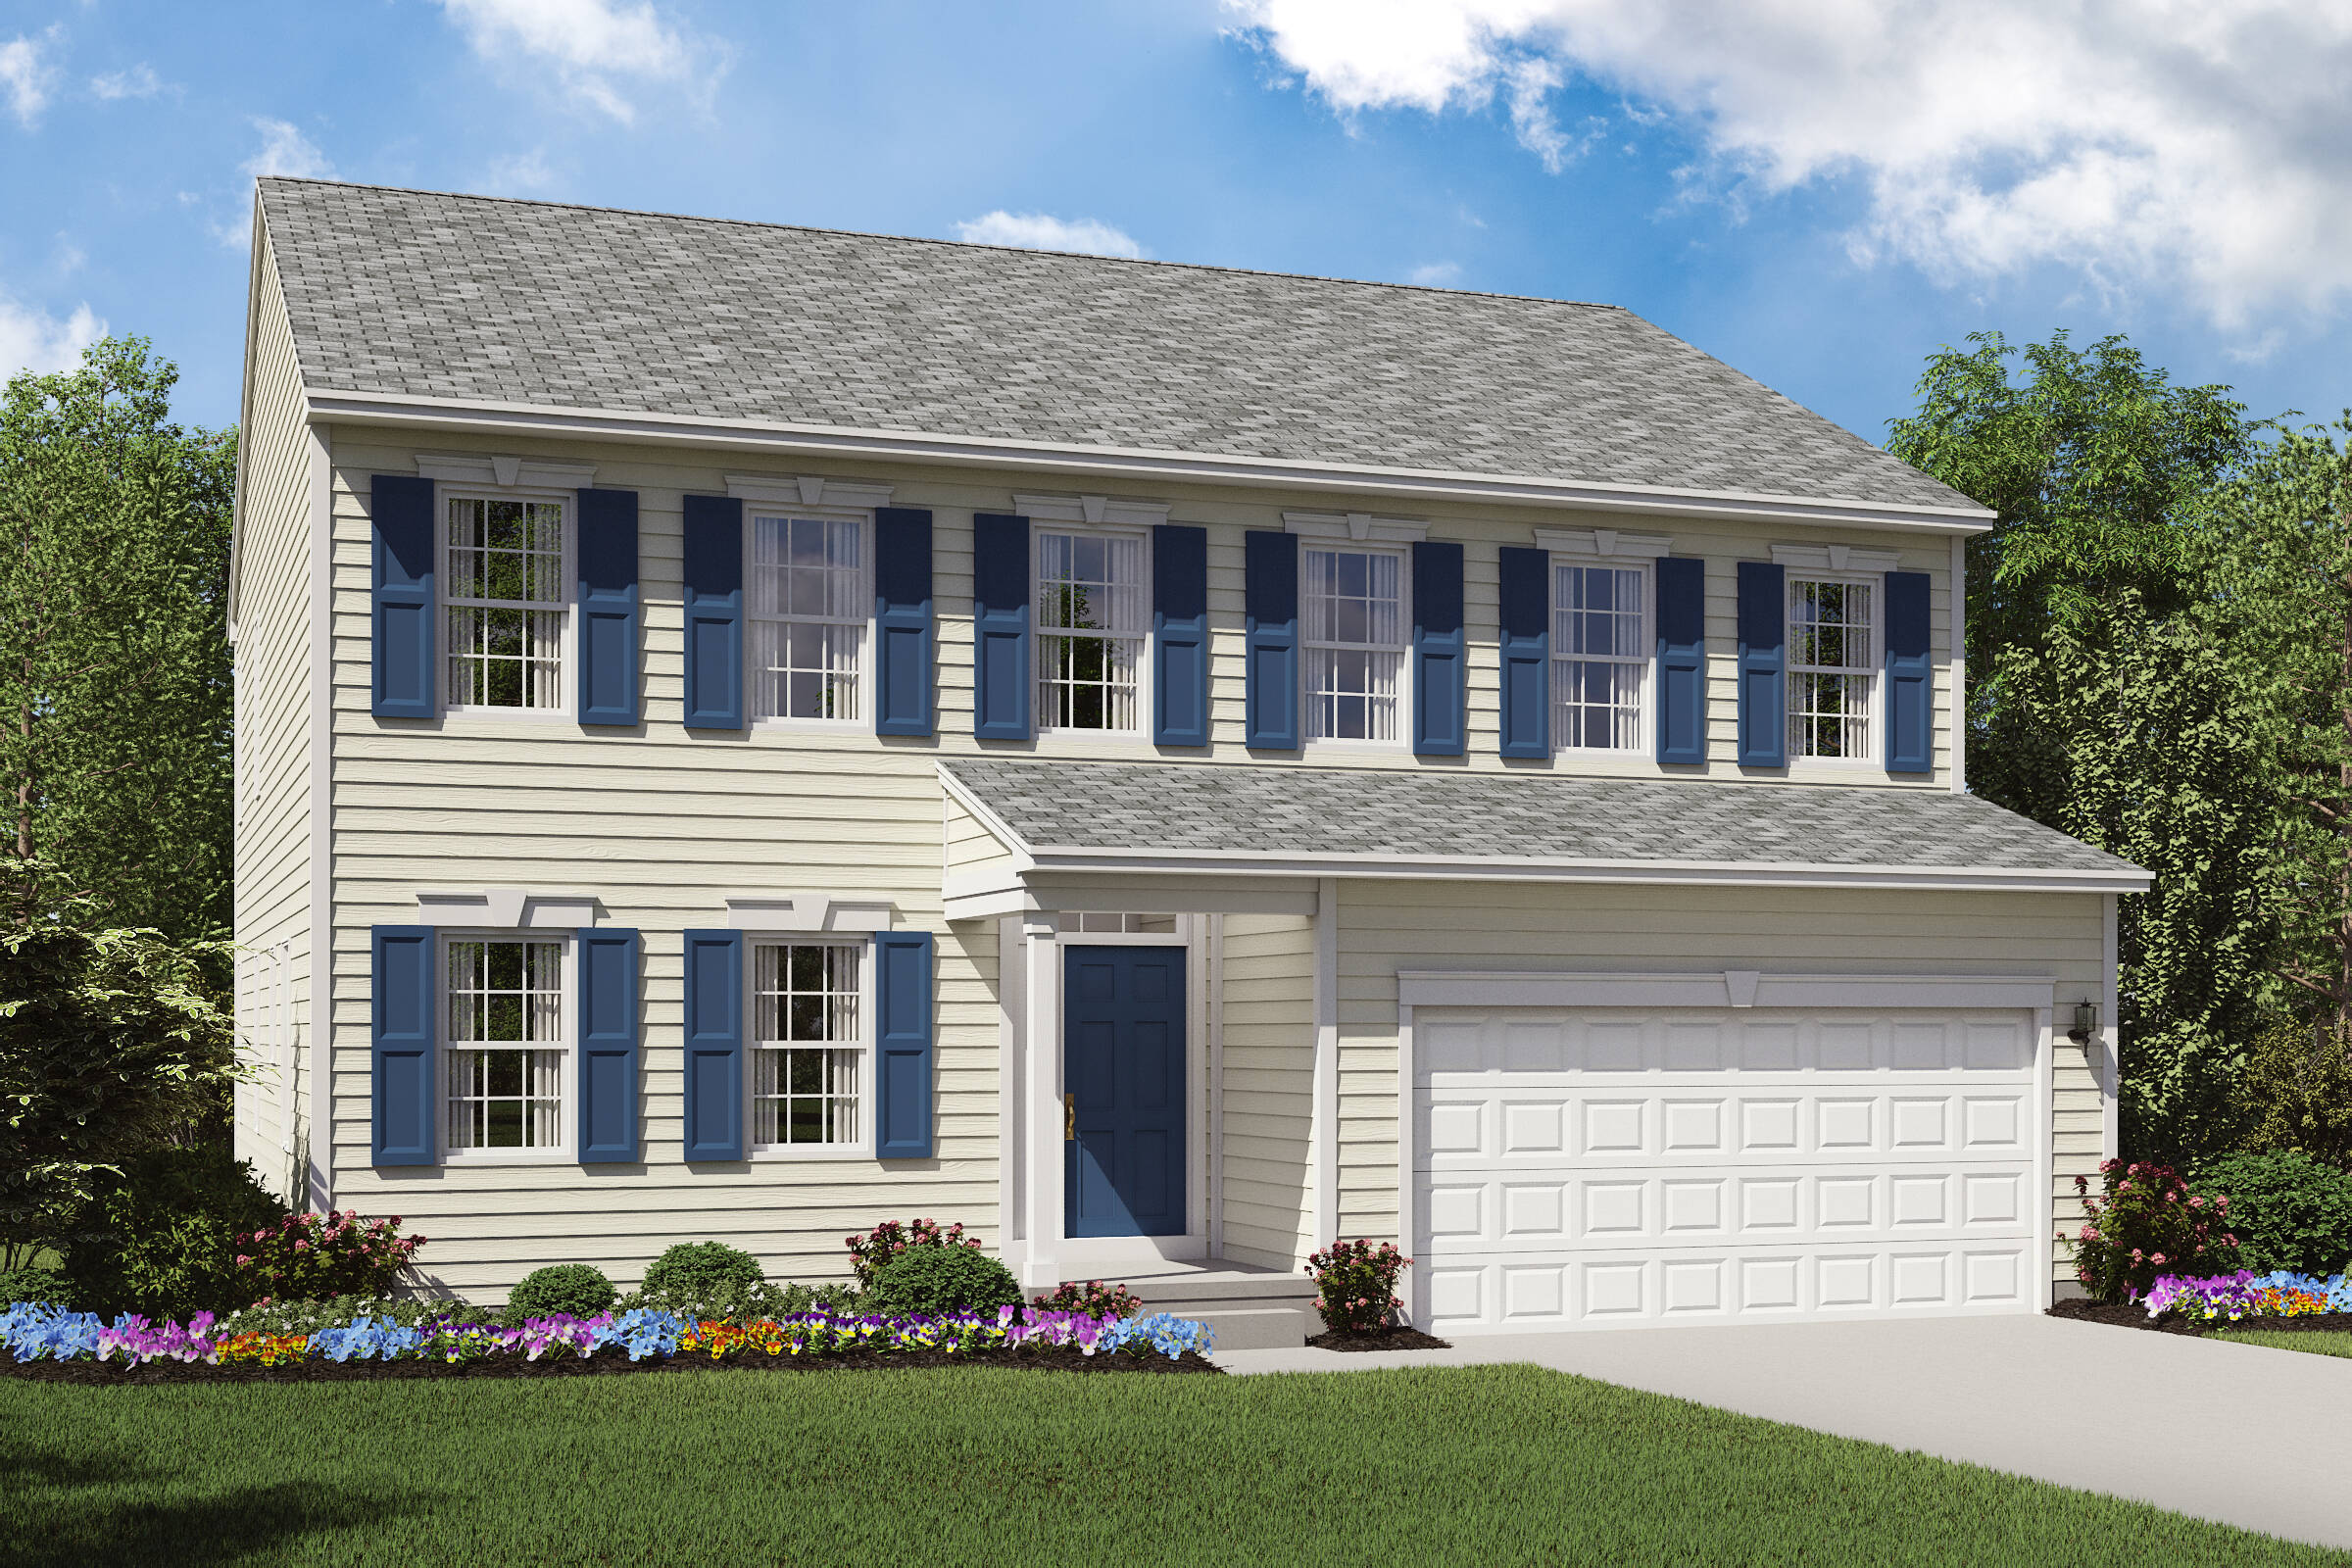 brantwood new home design tallmadge ohio